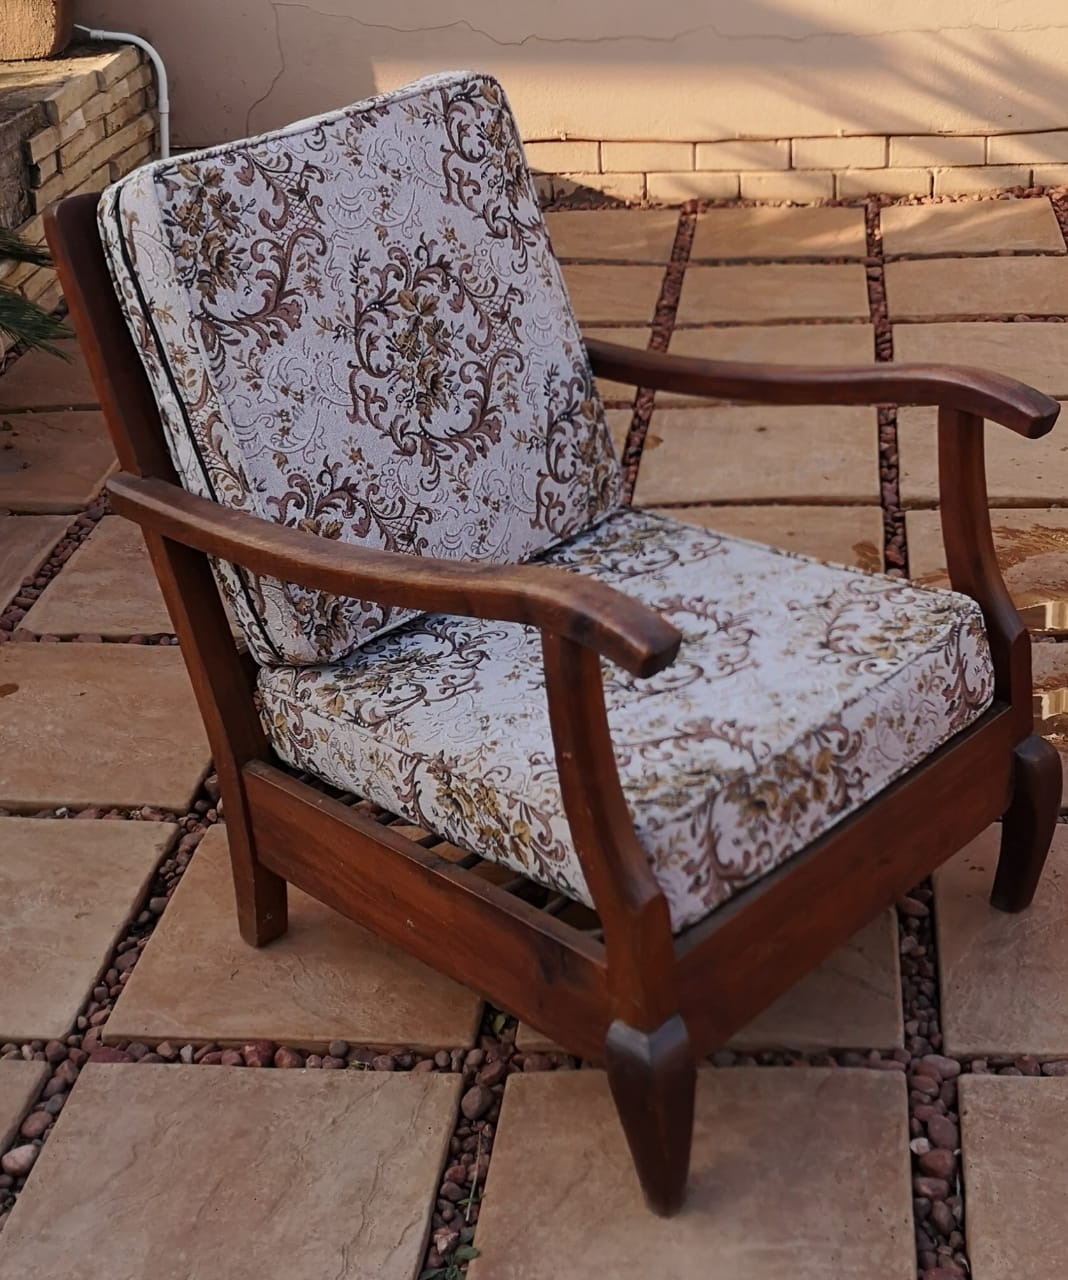 Antique Wooden Chairs >> Antique Wooden Chair With Cushions